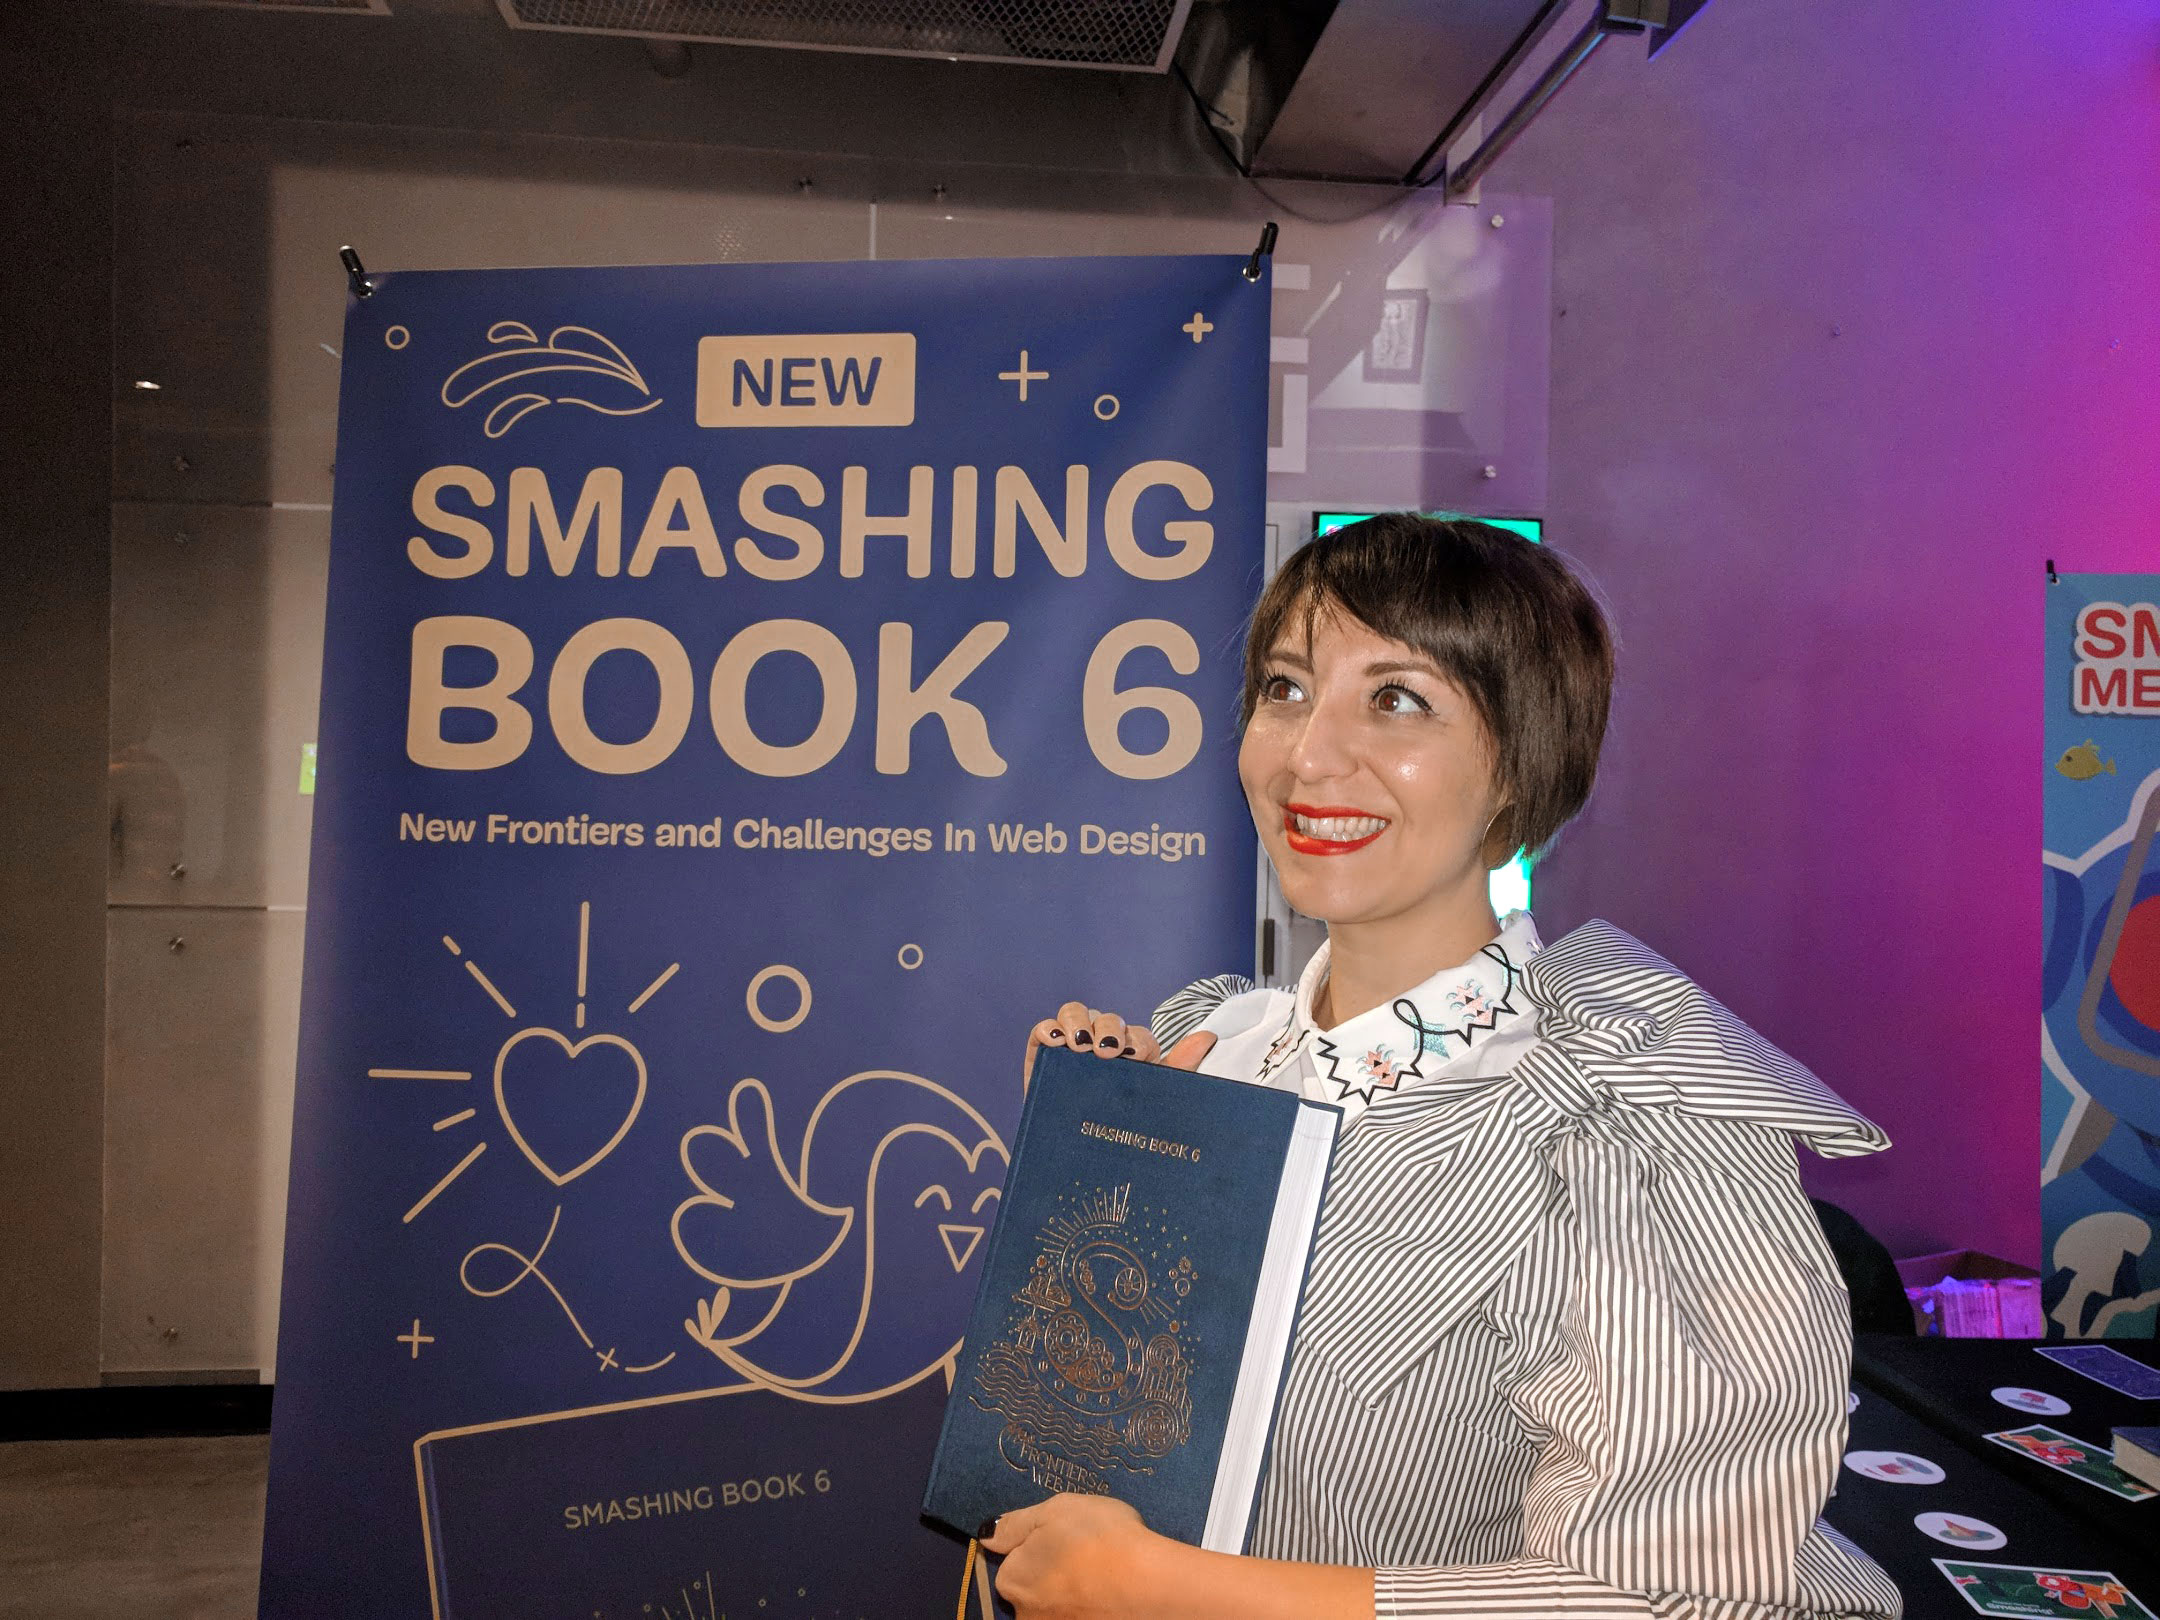 Chiara shows off her work for the cover of Smashing Book 6 35c7353600b71